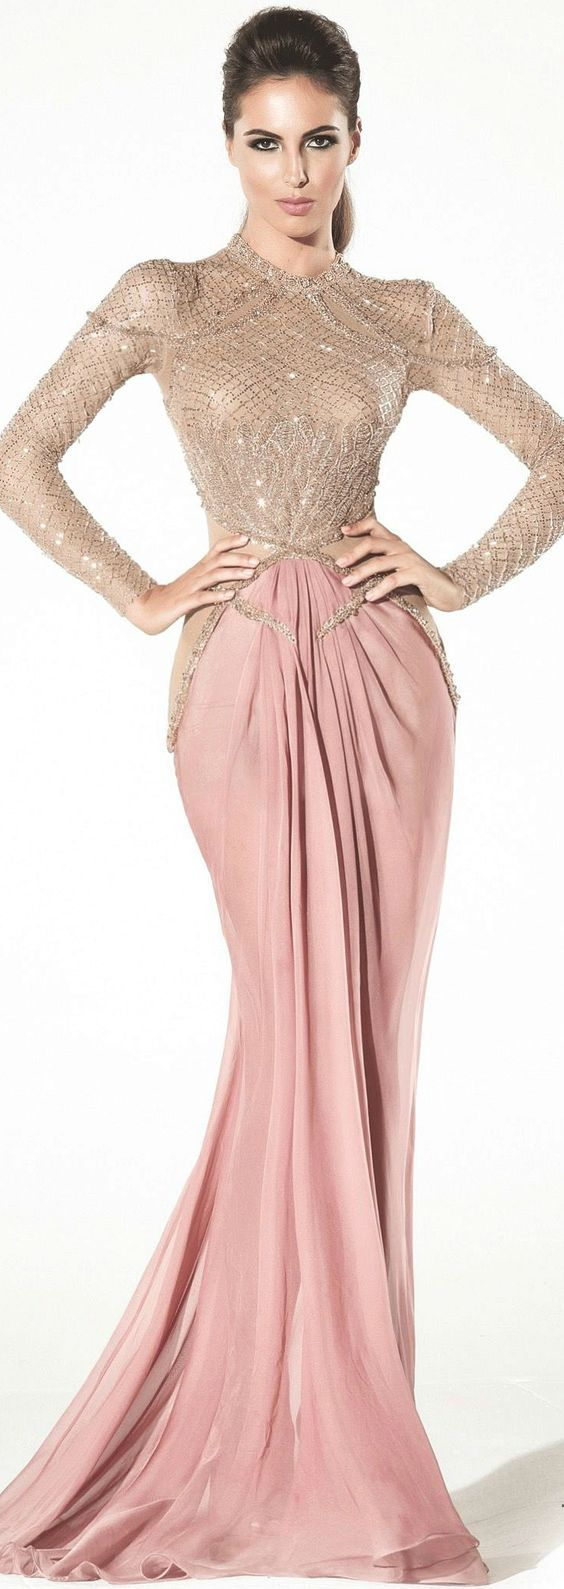 9 best Vestidos images on Pinterest | Ball gown, Evening gowns and ...